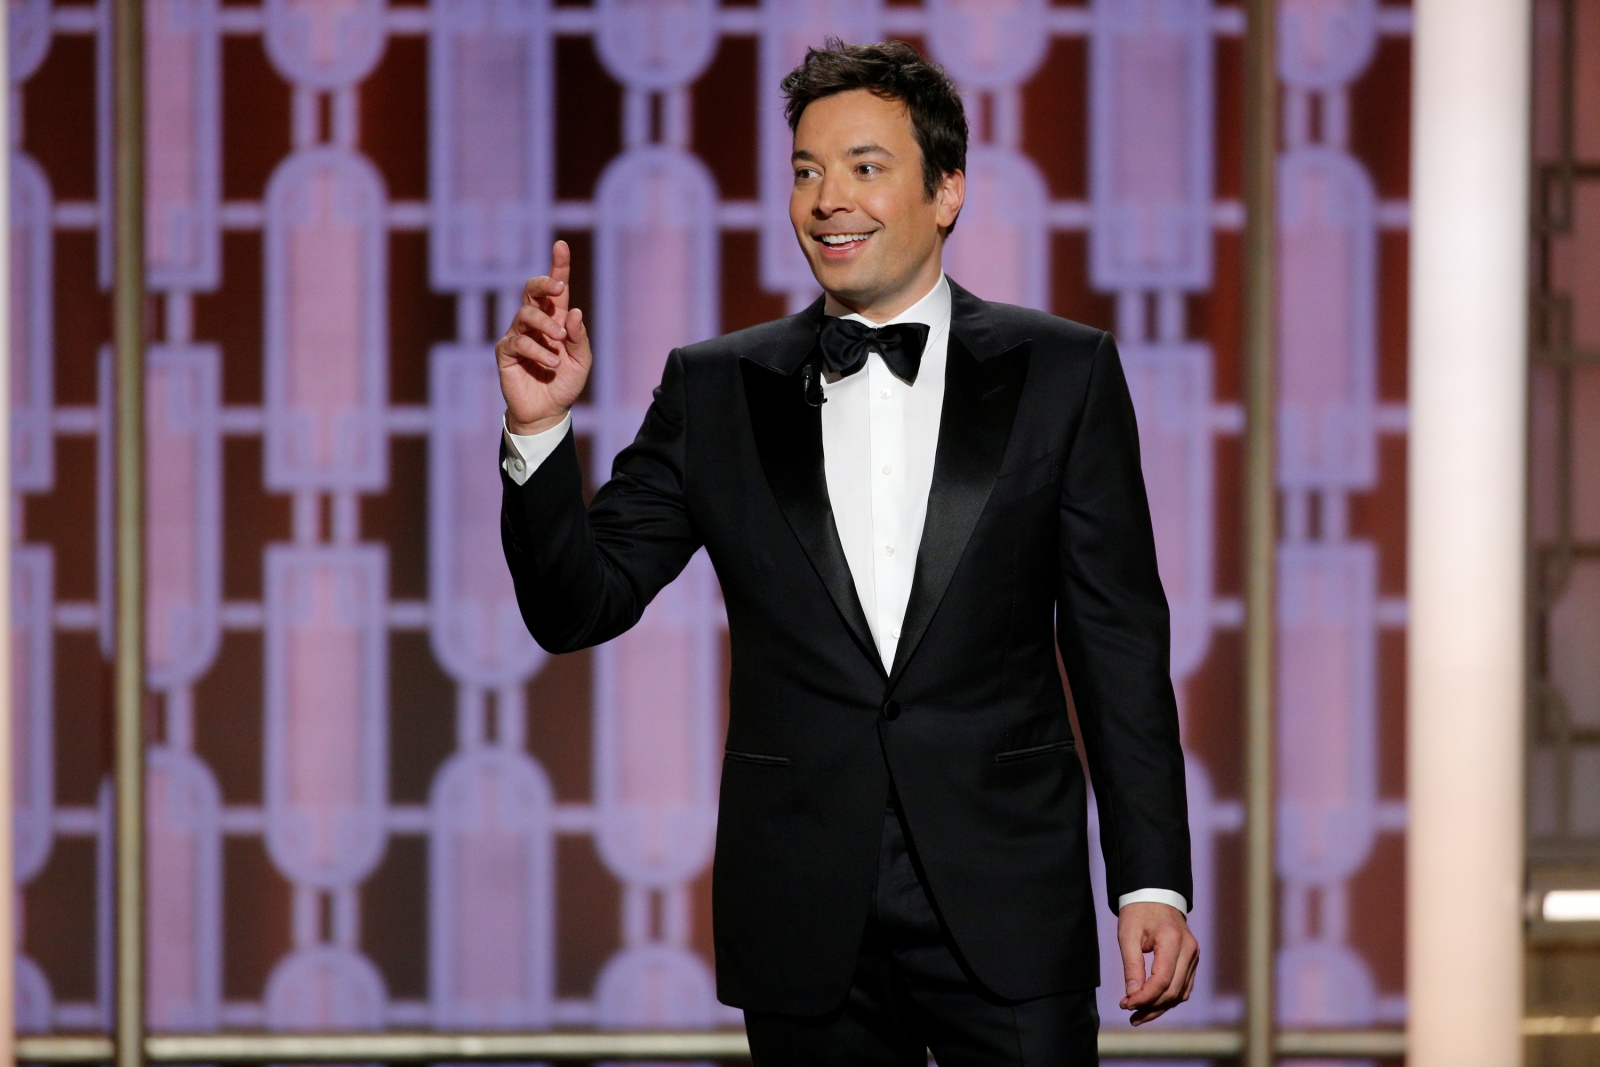 Jimmy Fallon is the host of the show.